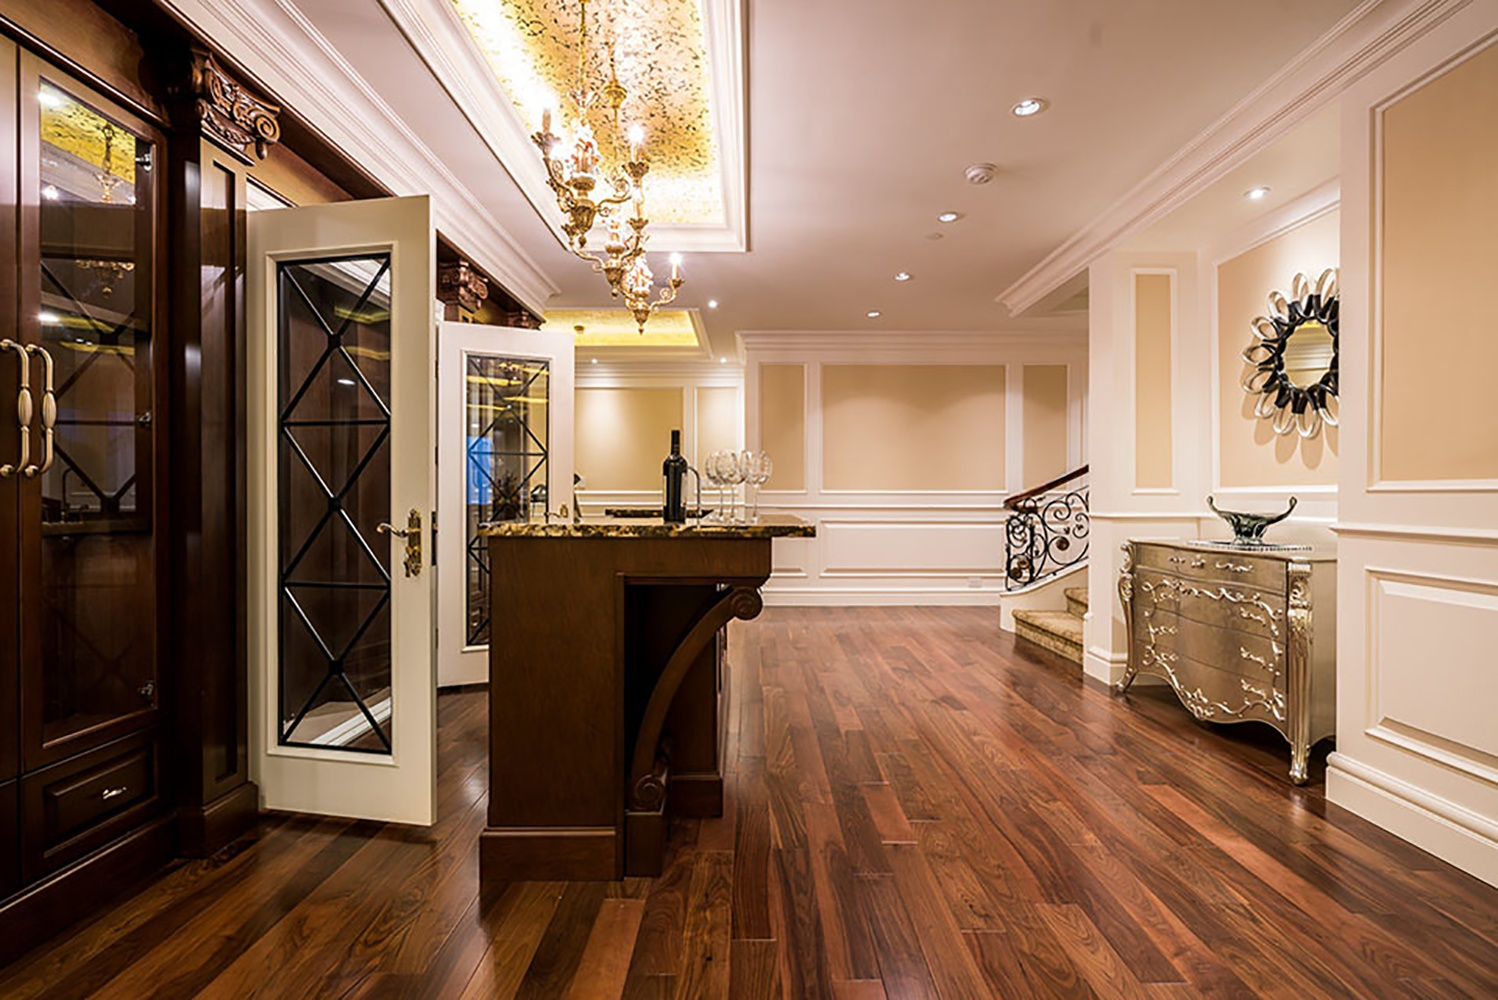 This home's lavish resort-inspired amenities include a lower-level entertainment center with a solid-wood wet bar and 300-bottle wine cellar.